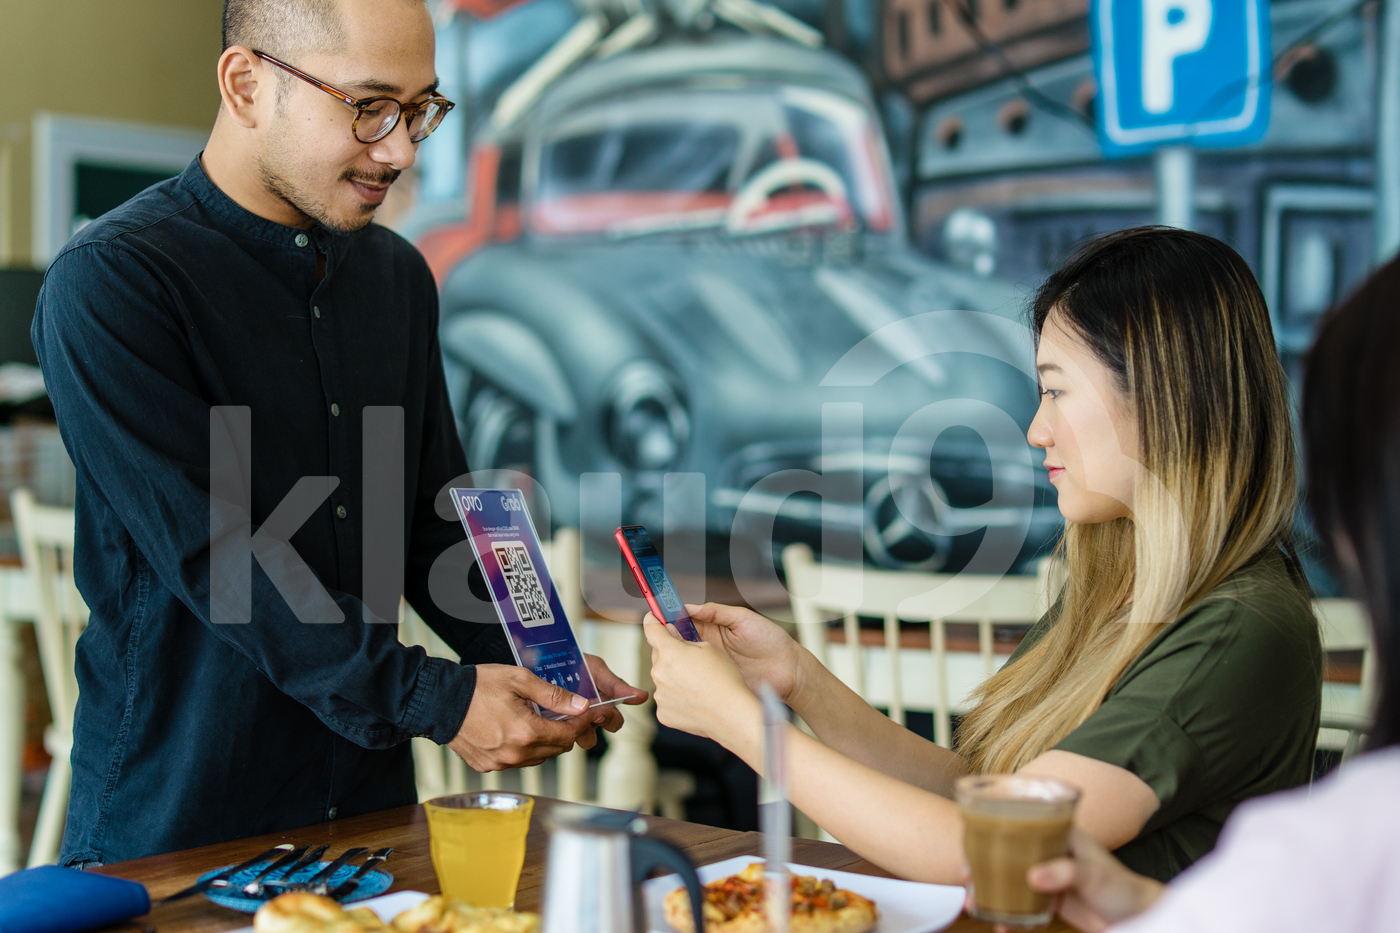 Young adult woman scanning QR code in a restaurant